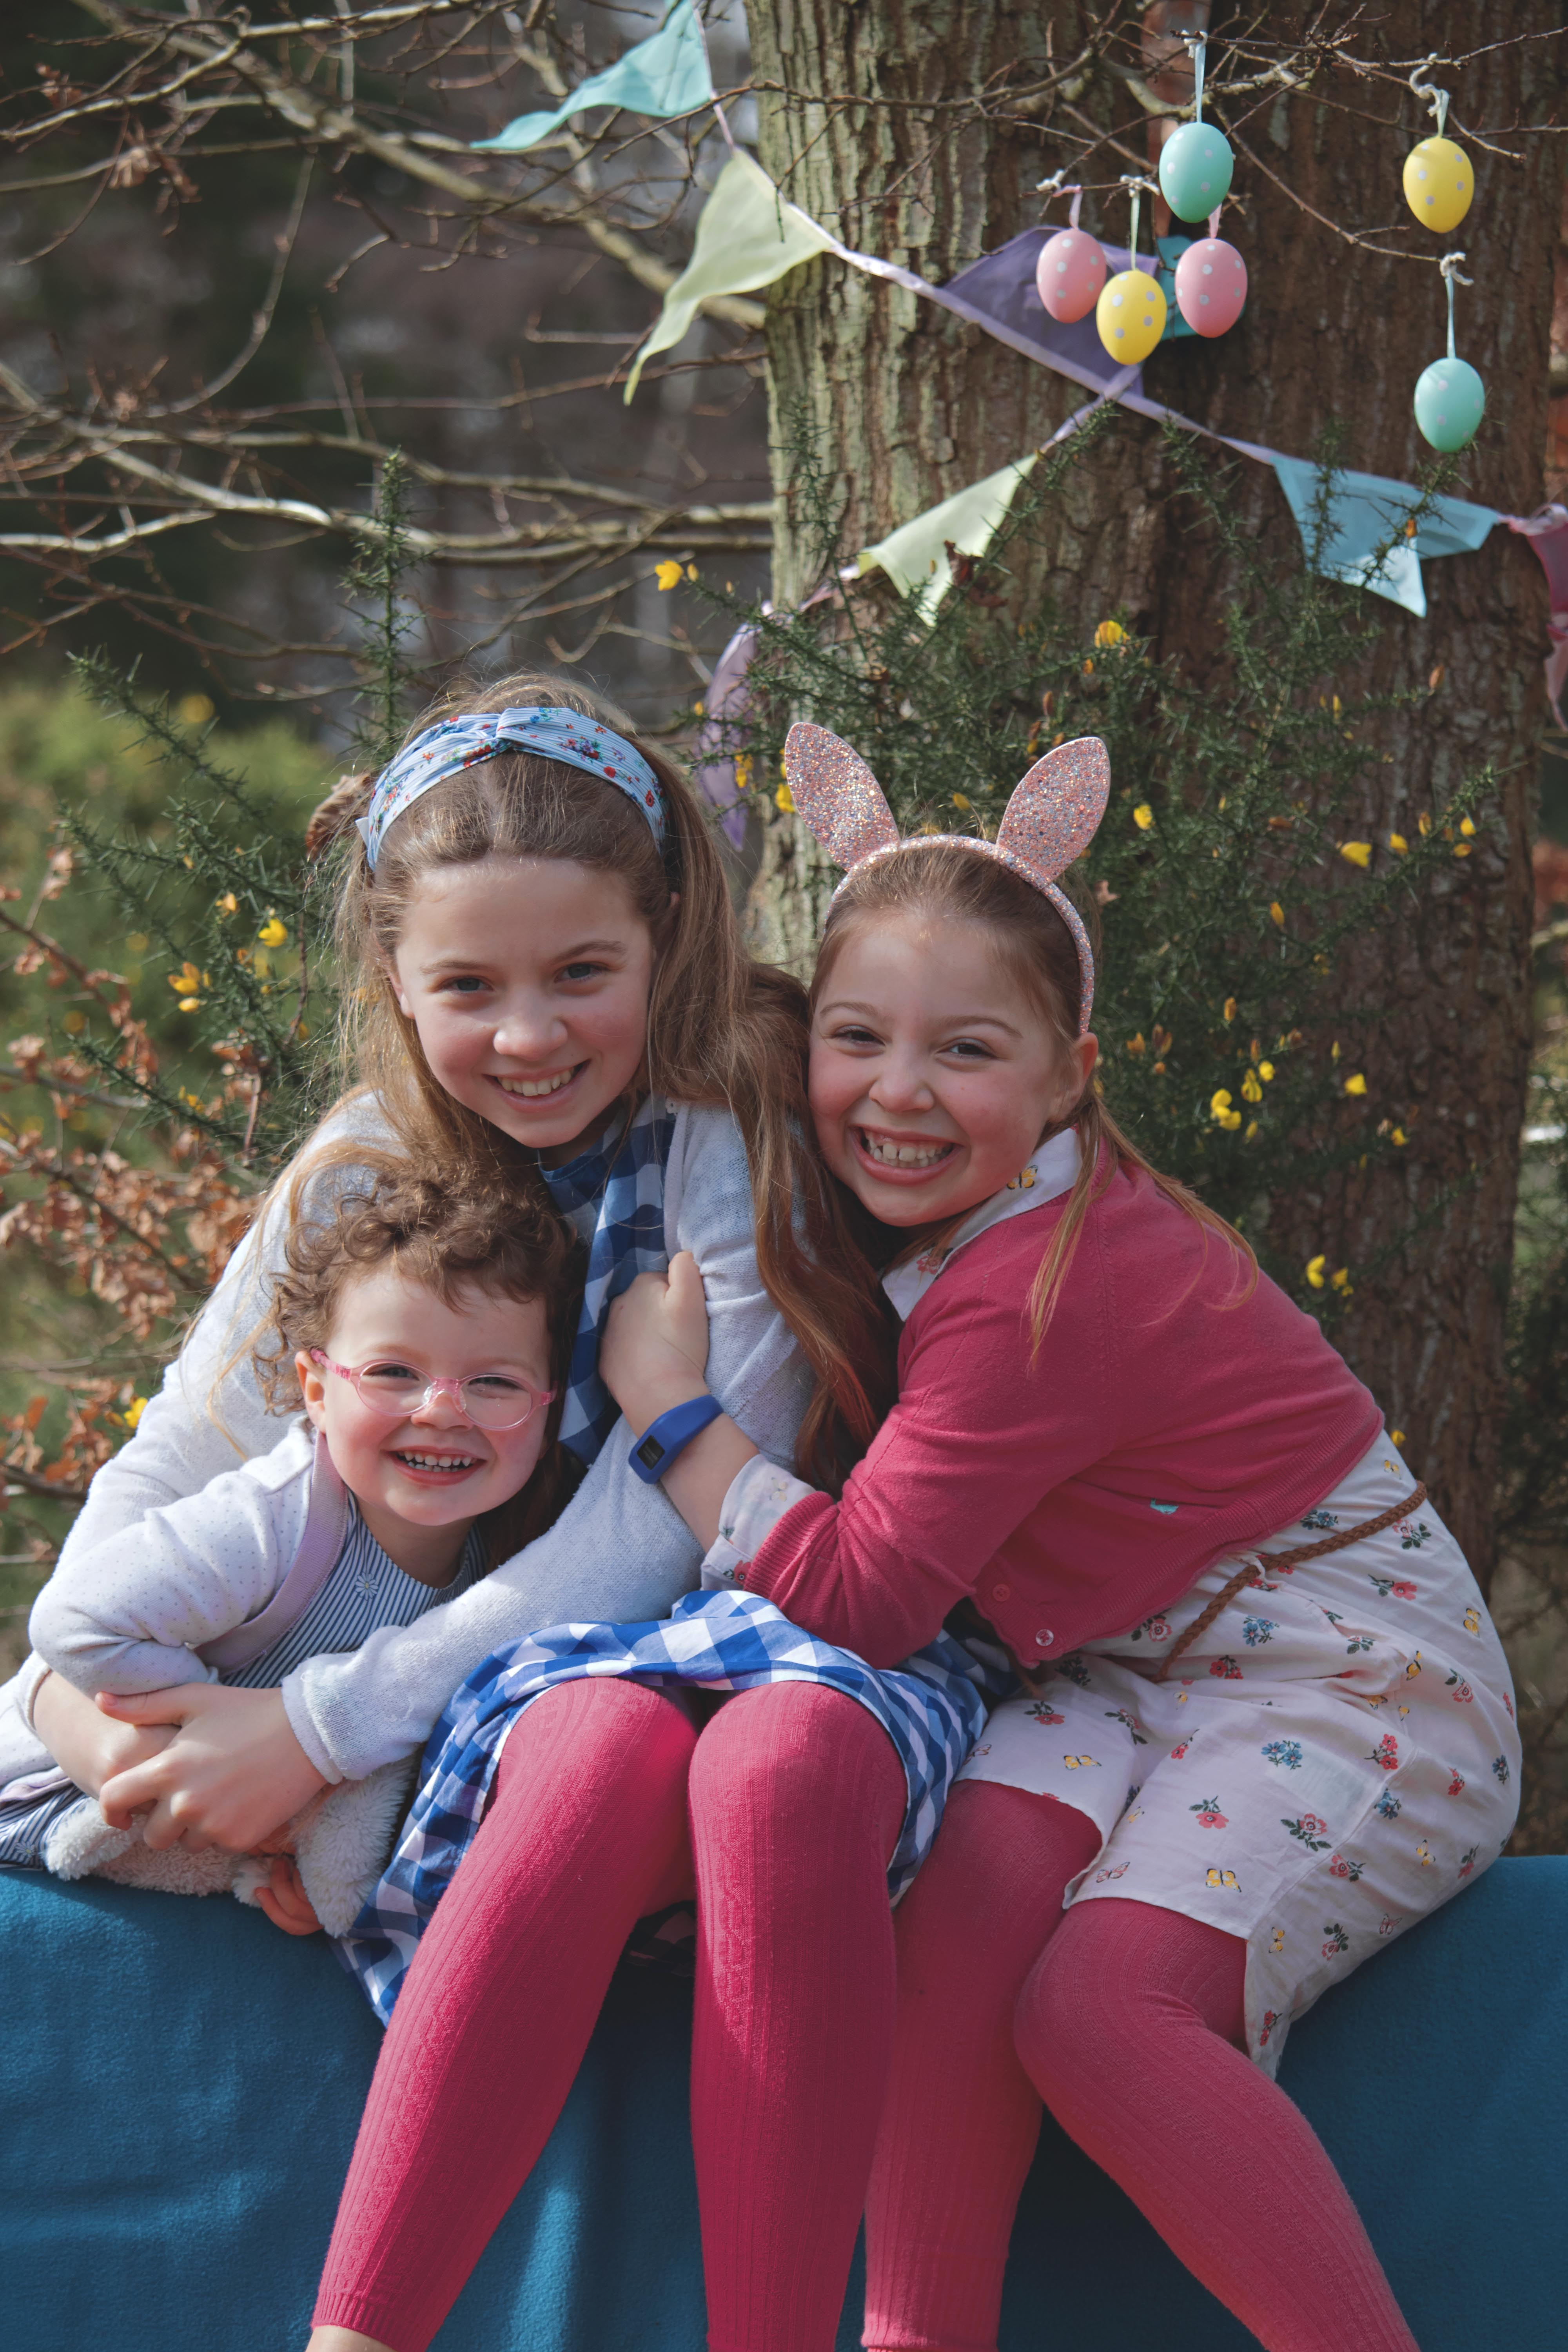 Fun Family Portraits at Easter Time in Surrey